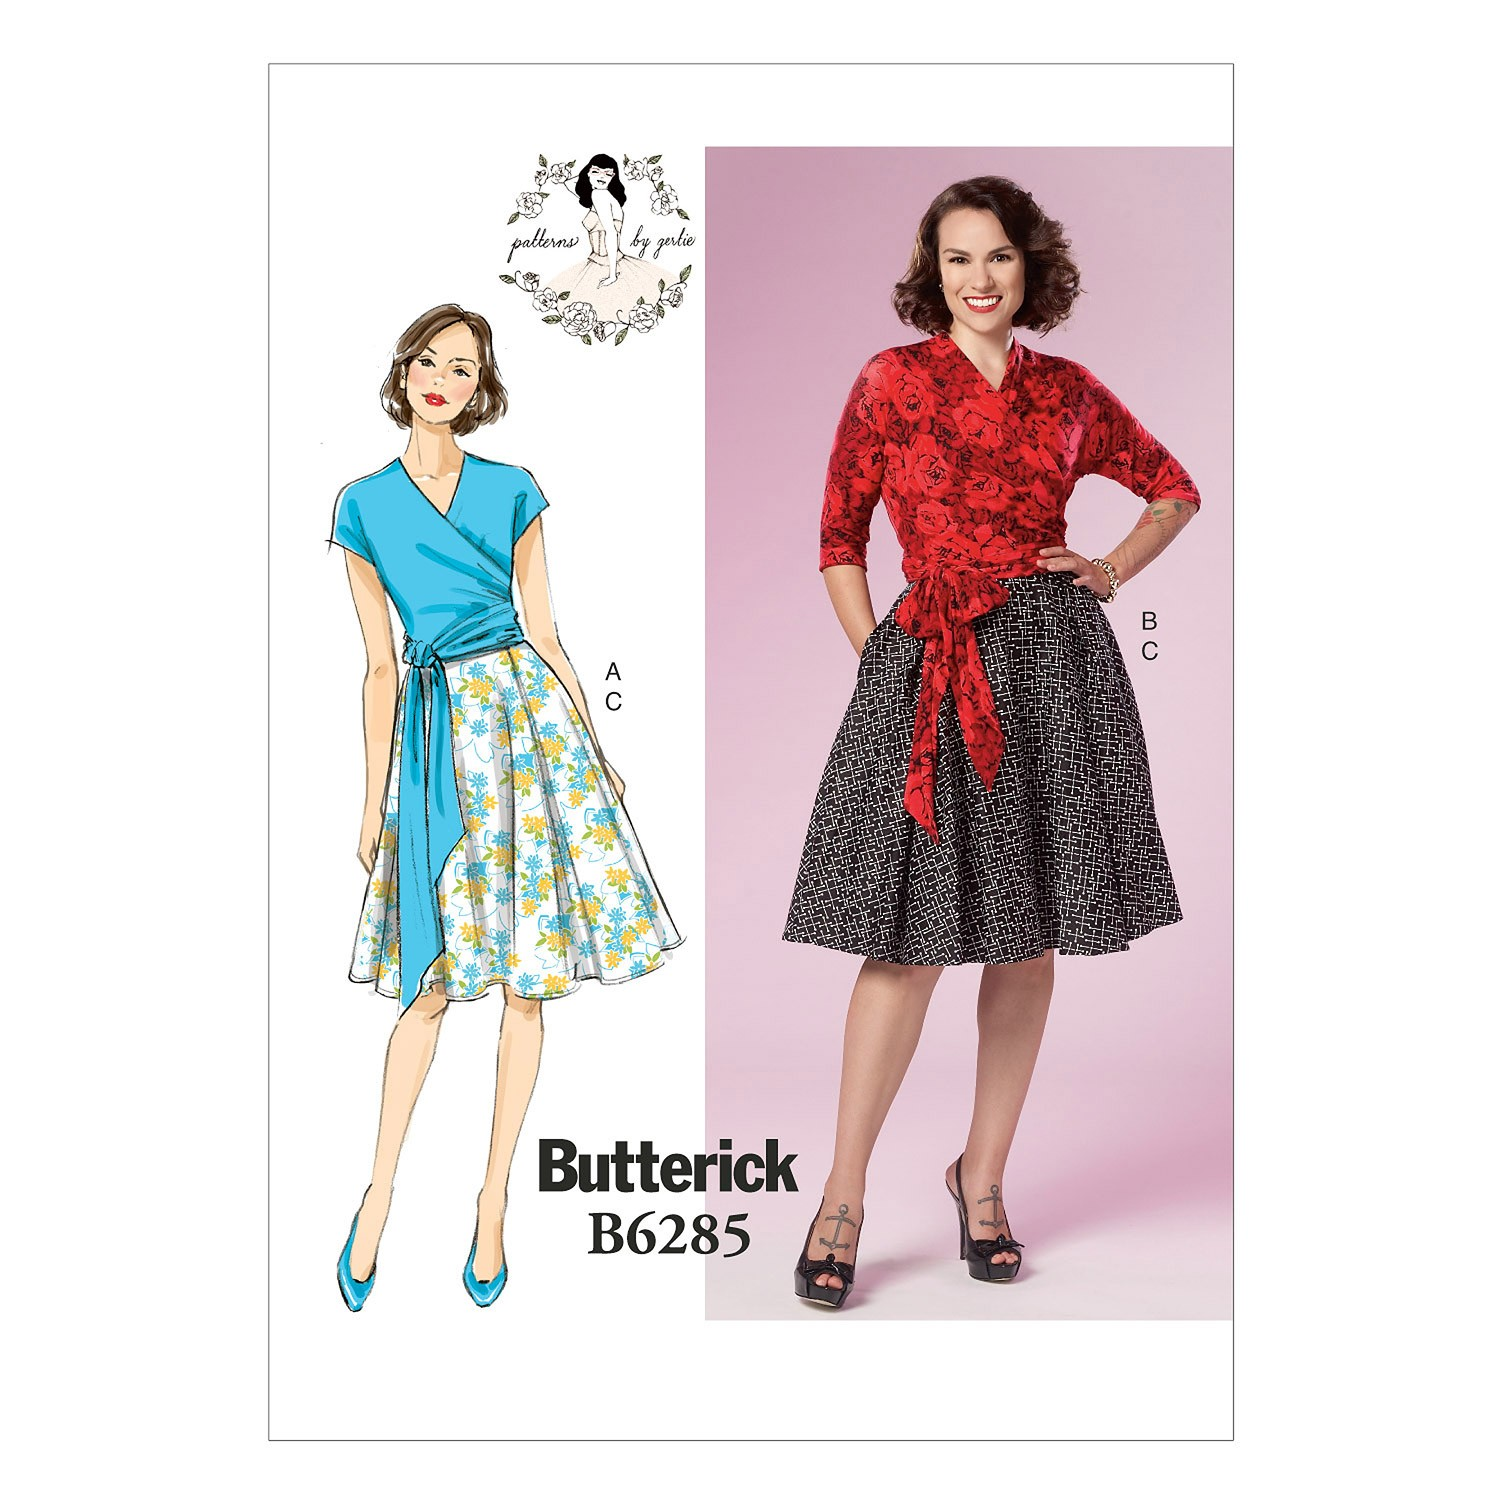 Butterick Sewing Pattern 6285 Misses' Fitted Top & Skirt